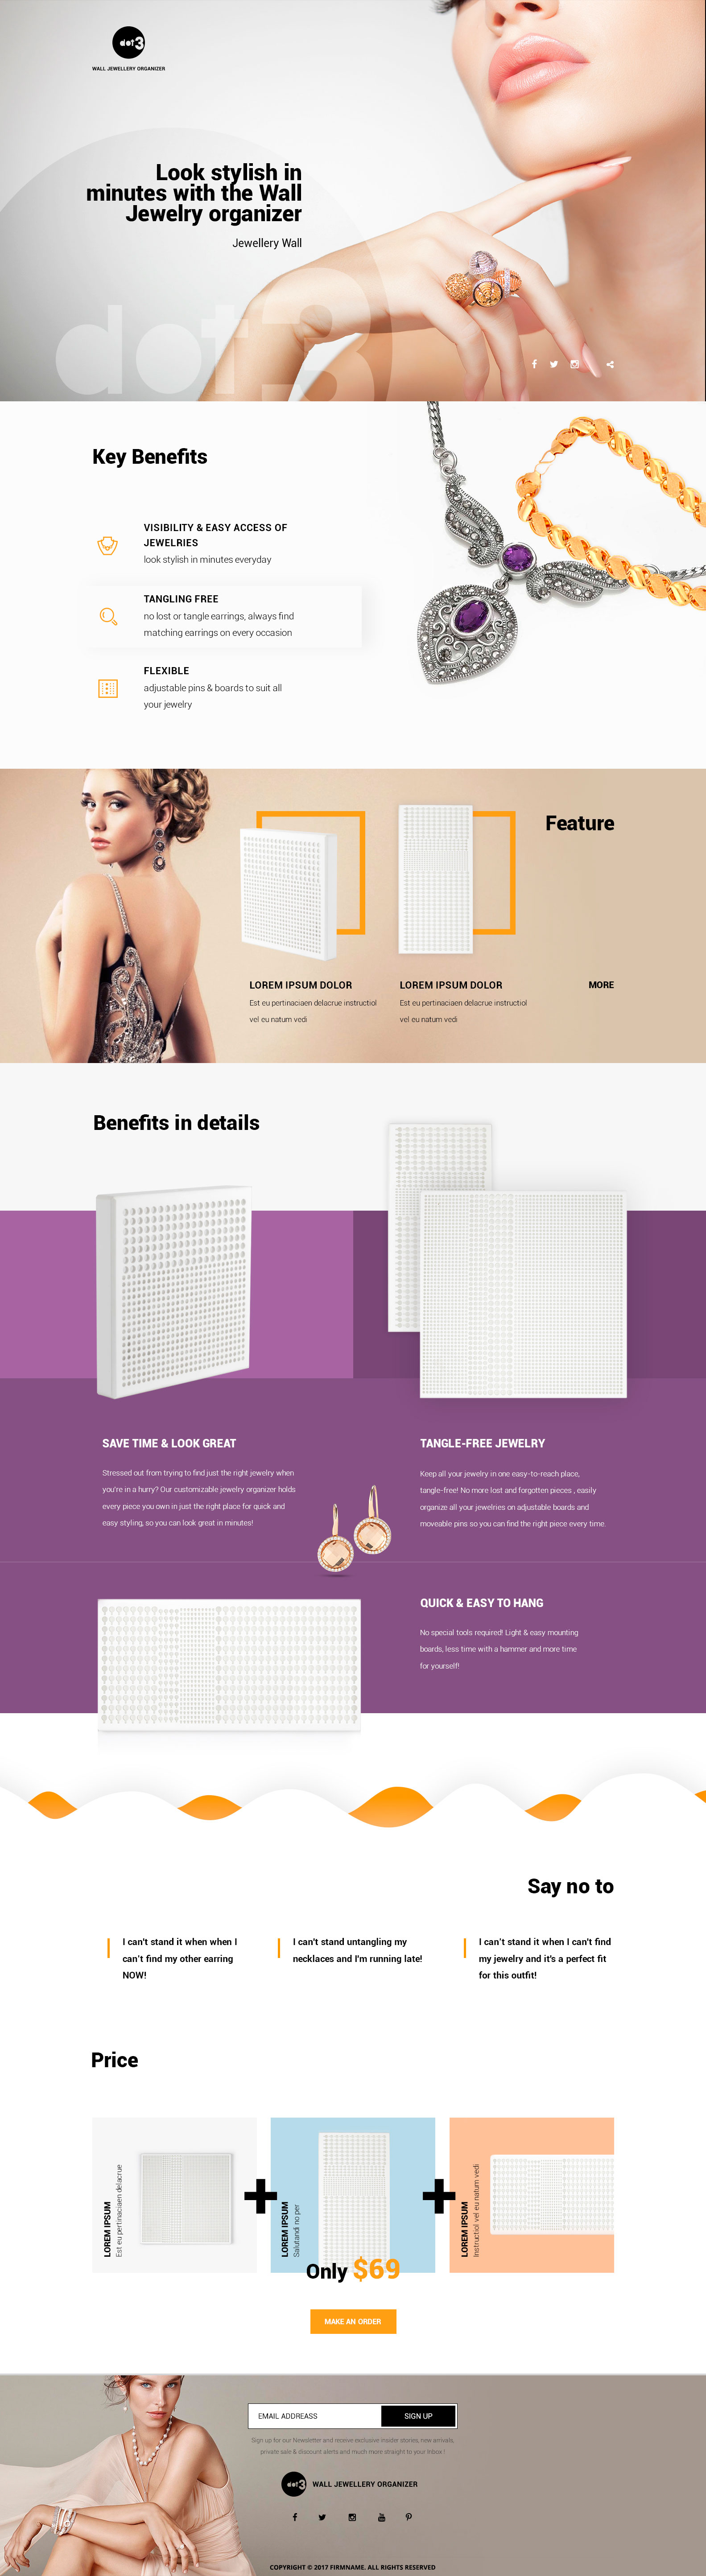 Jewelry organizer - Landing page - Web-design - Merehead Development